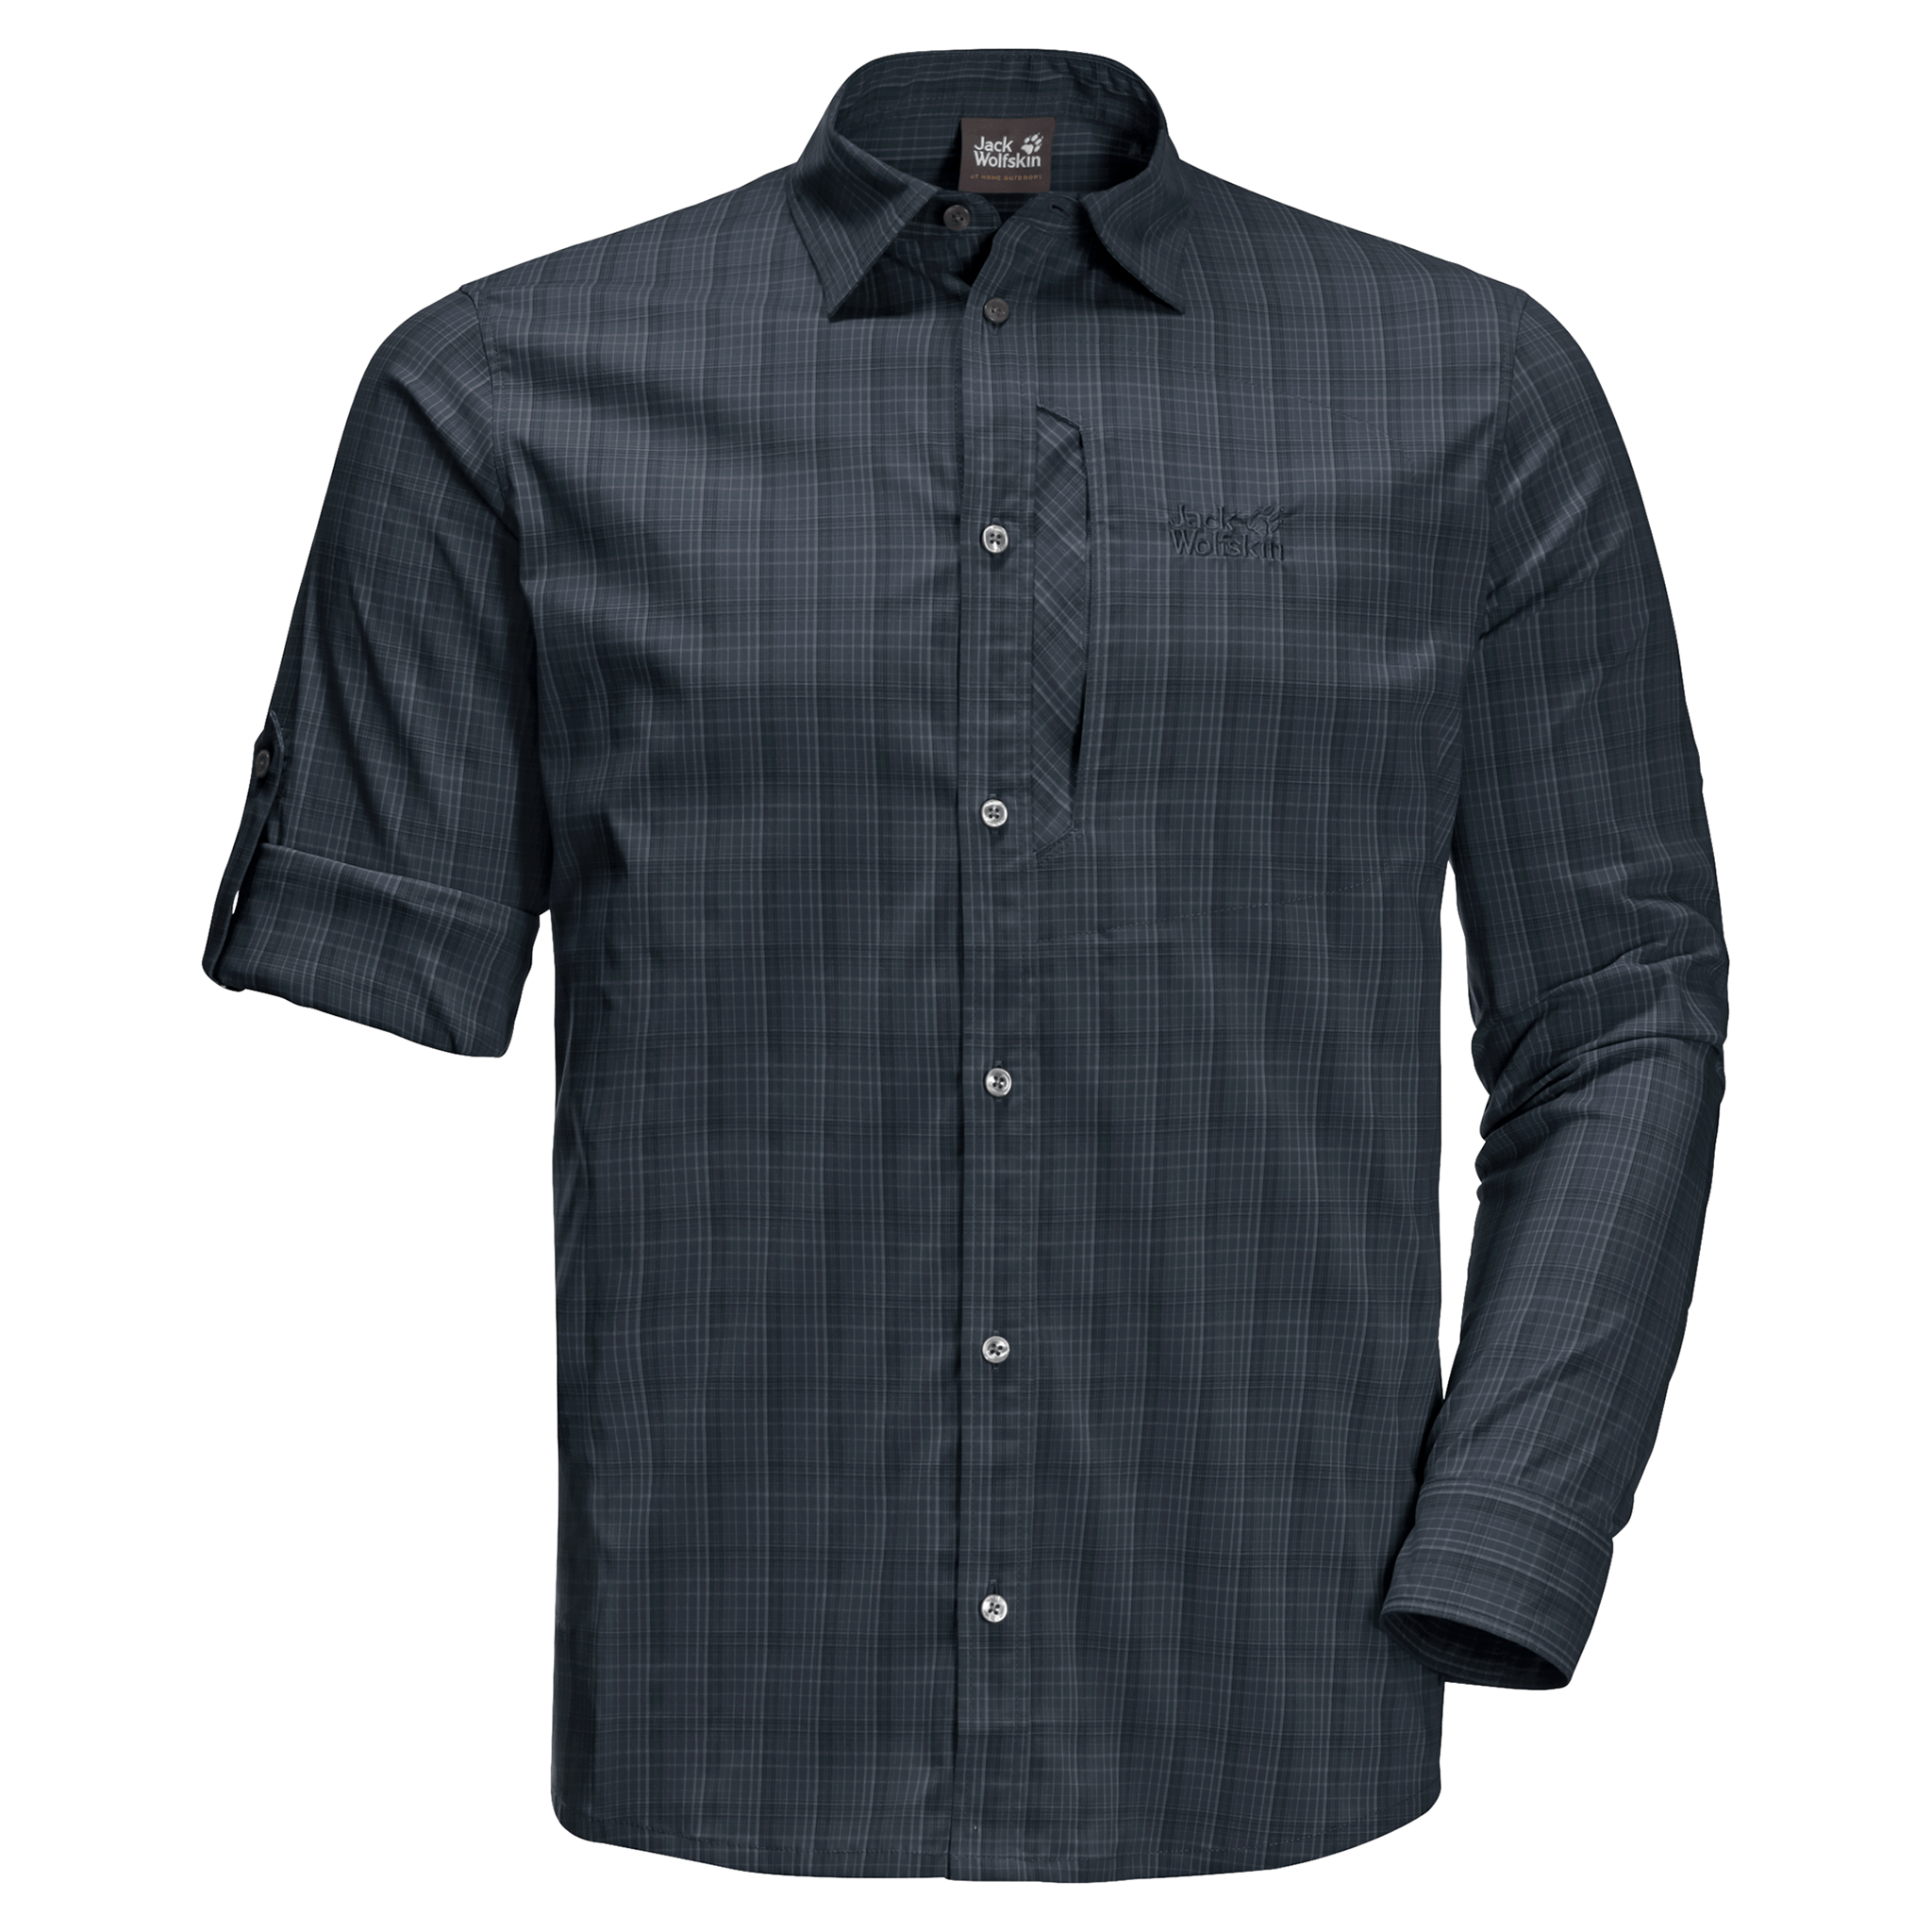 Night Blue Checks Athletic T-Shirt Men